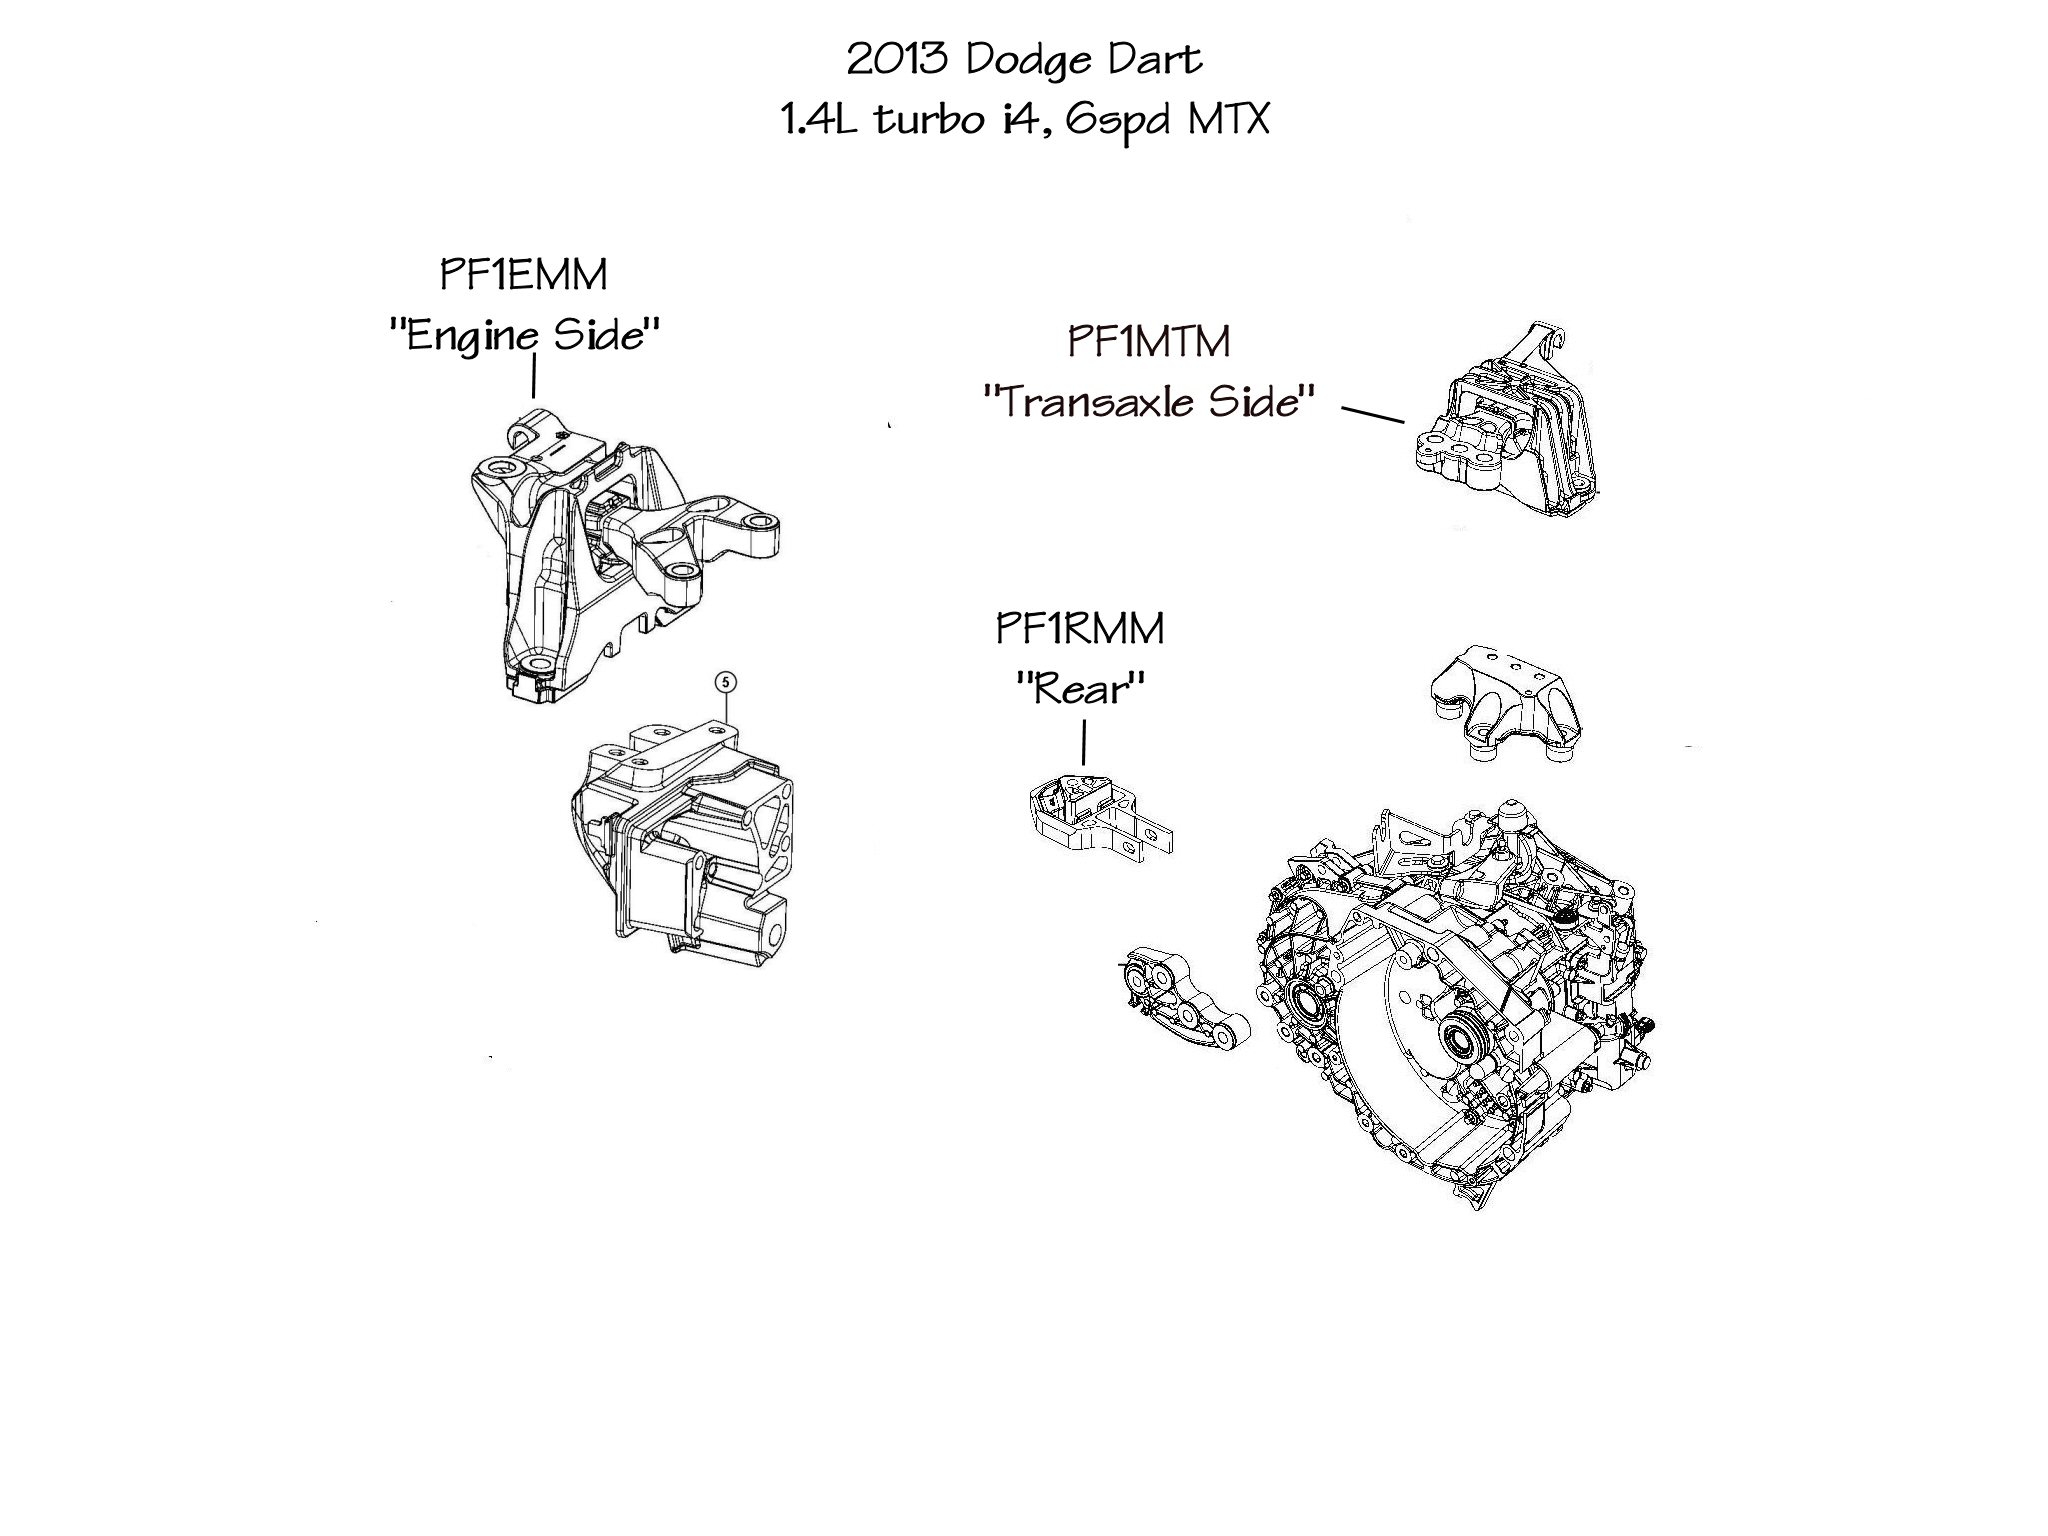 Dodge Dart 2 0 Engine Diagram For Electronic Ignition Wiring Diagram For Ih Autostereo Yenpancane Jeanjaures37 Fr